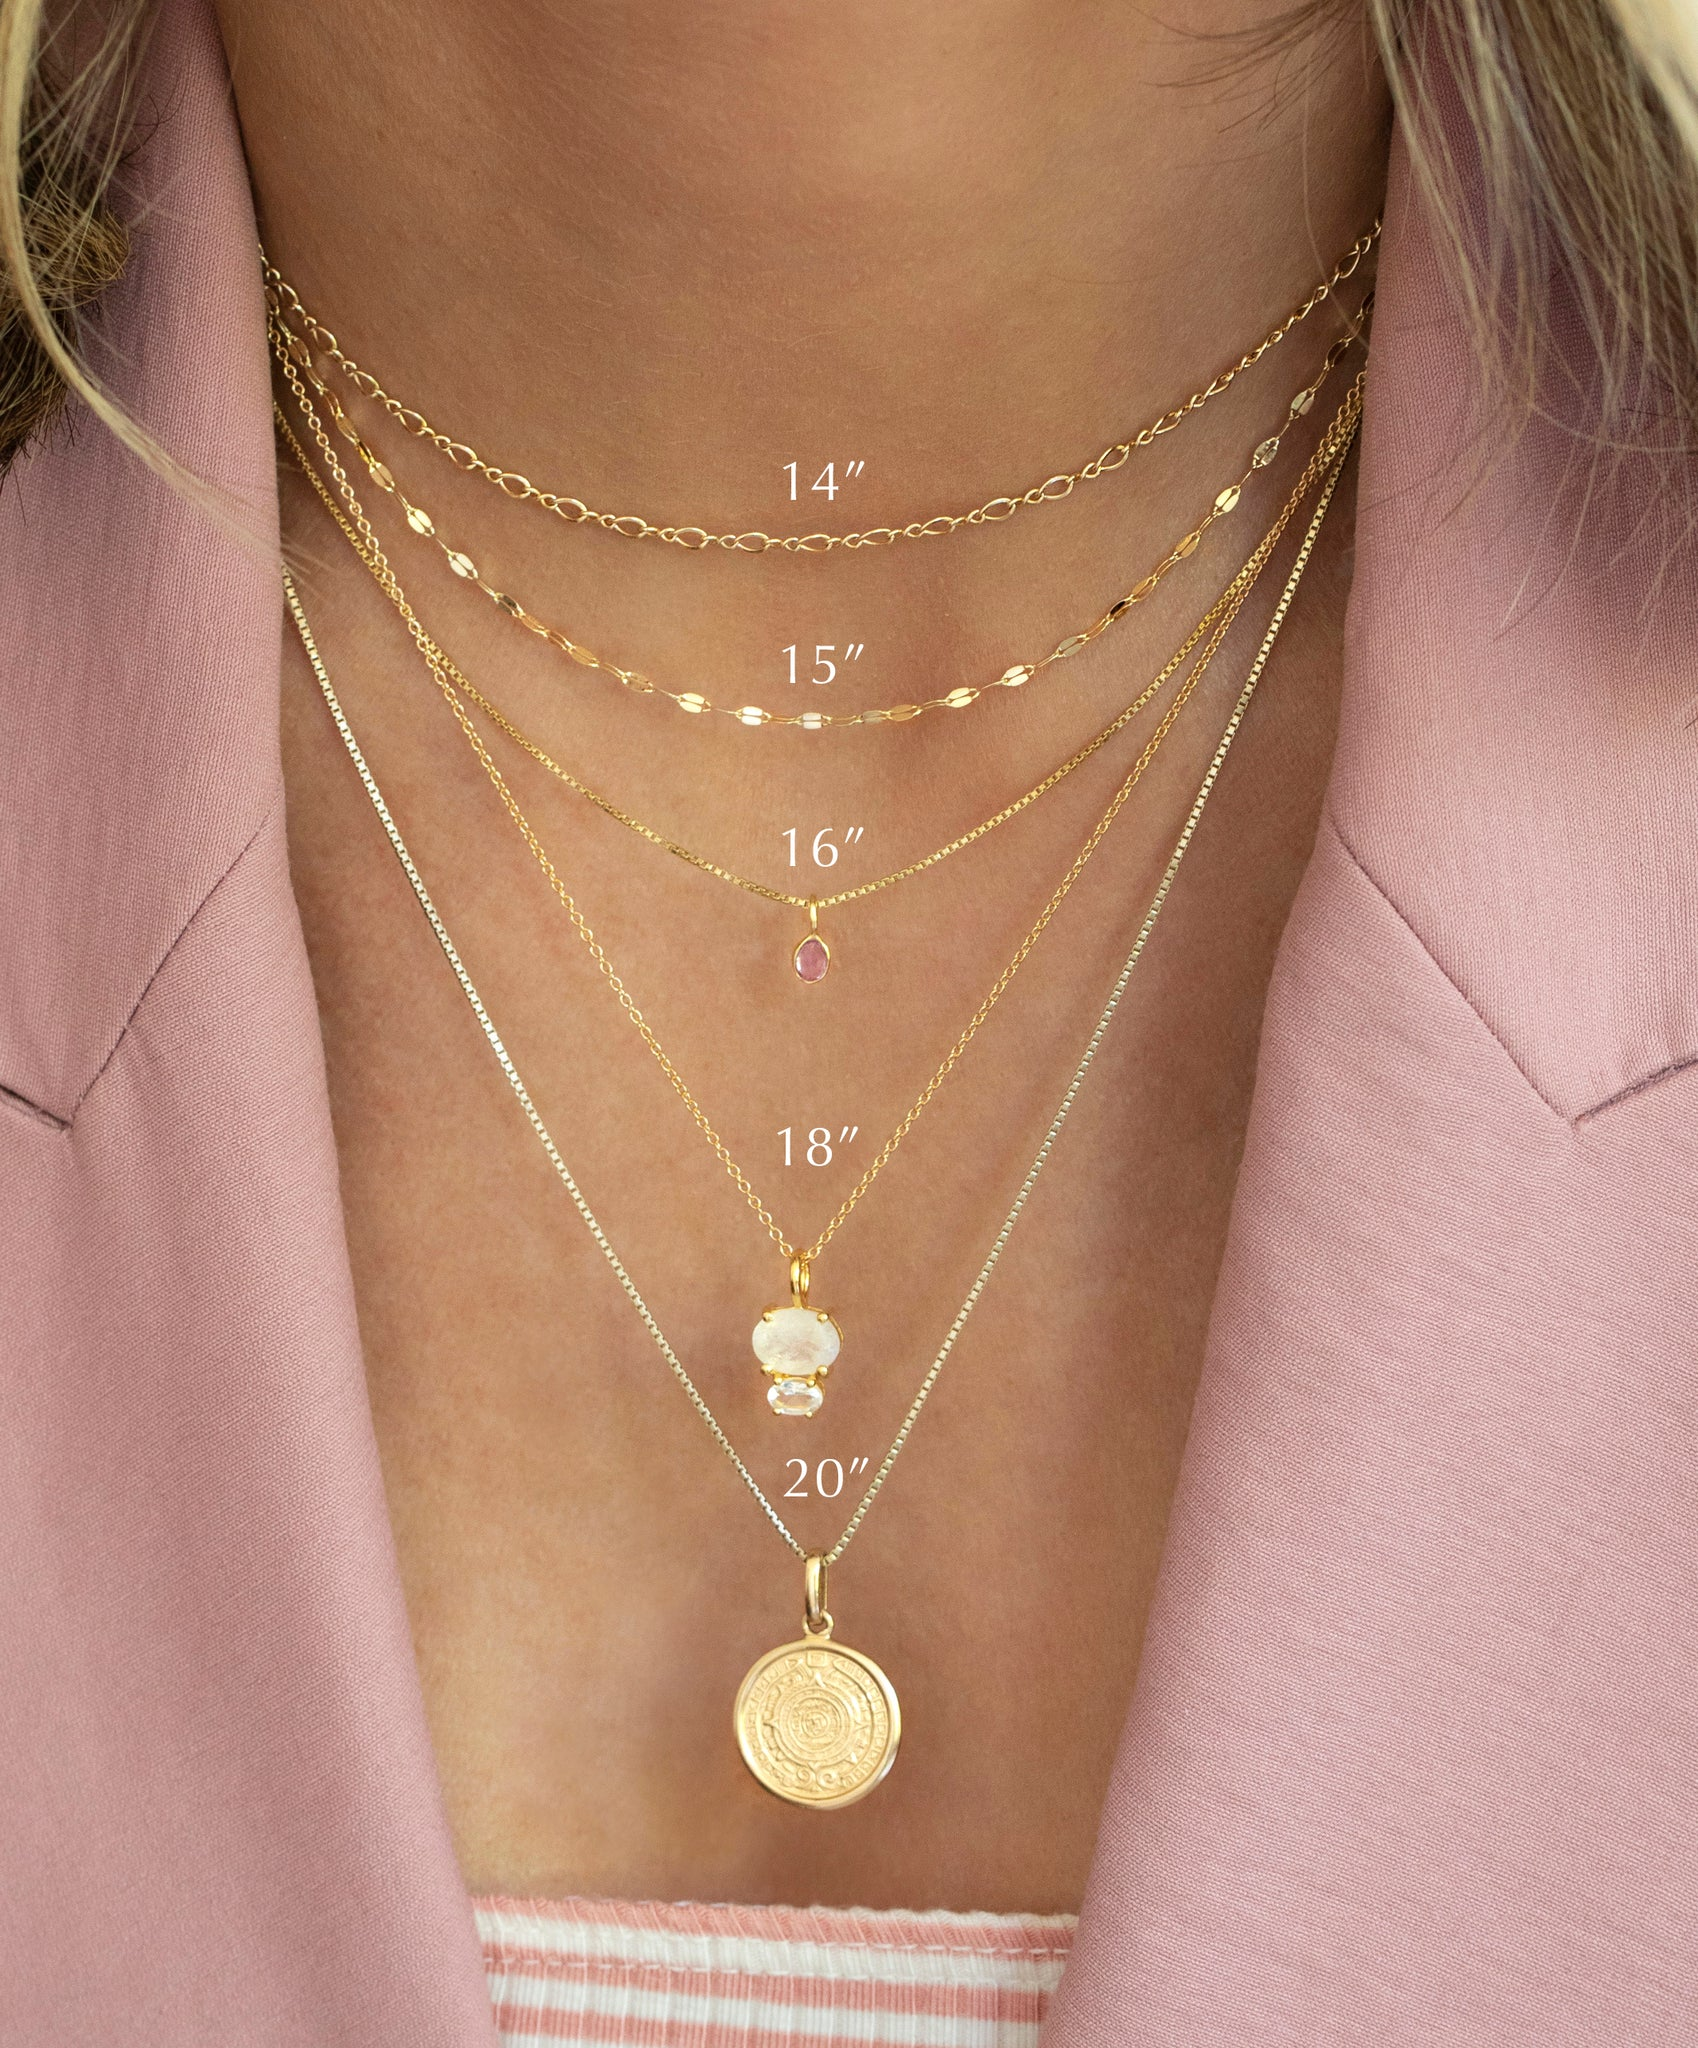 Necklace Layering Length Guide